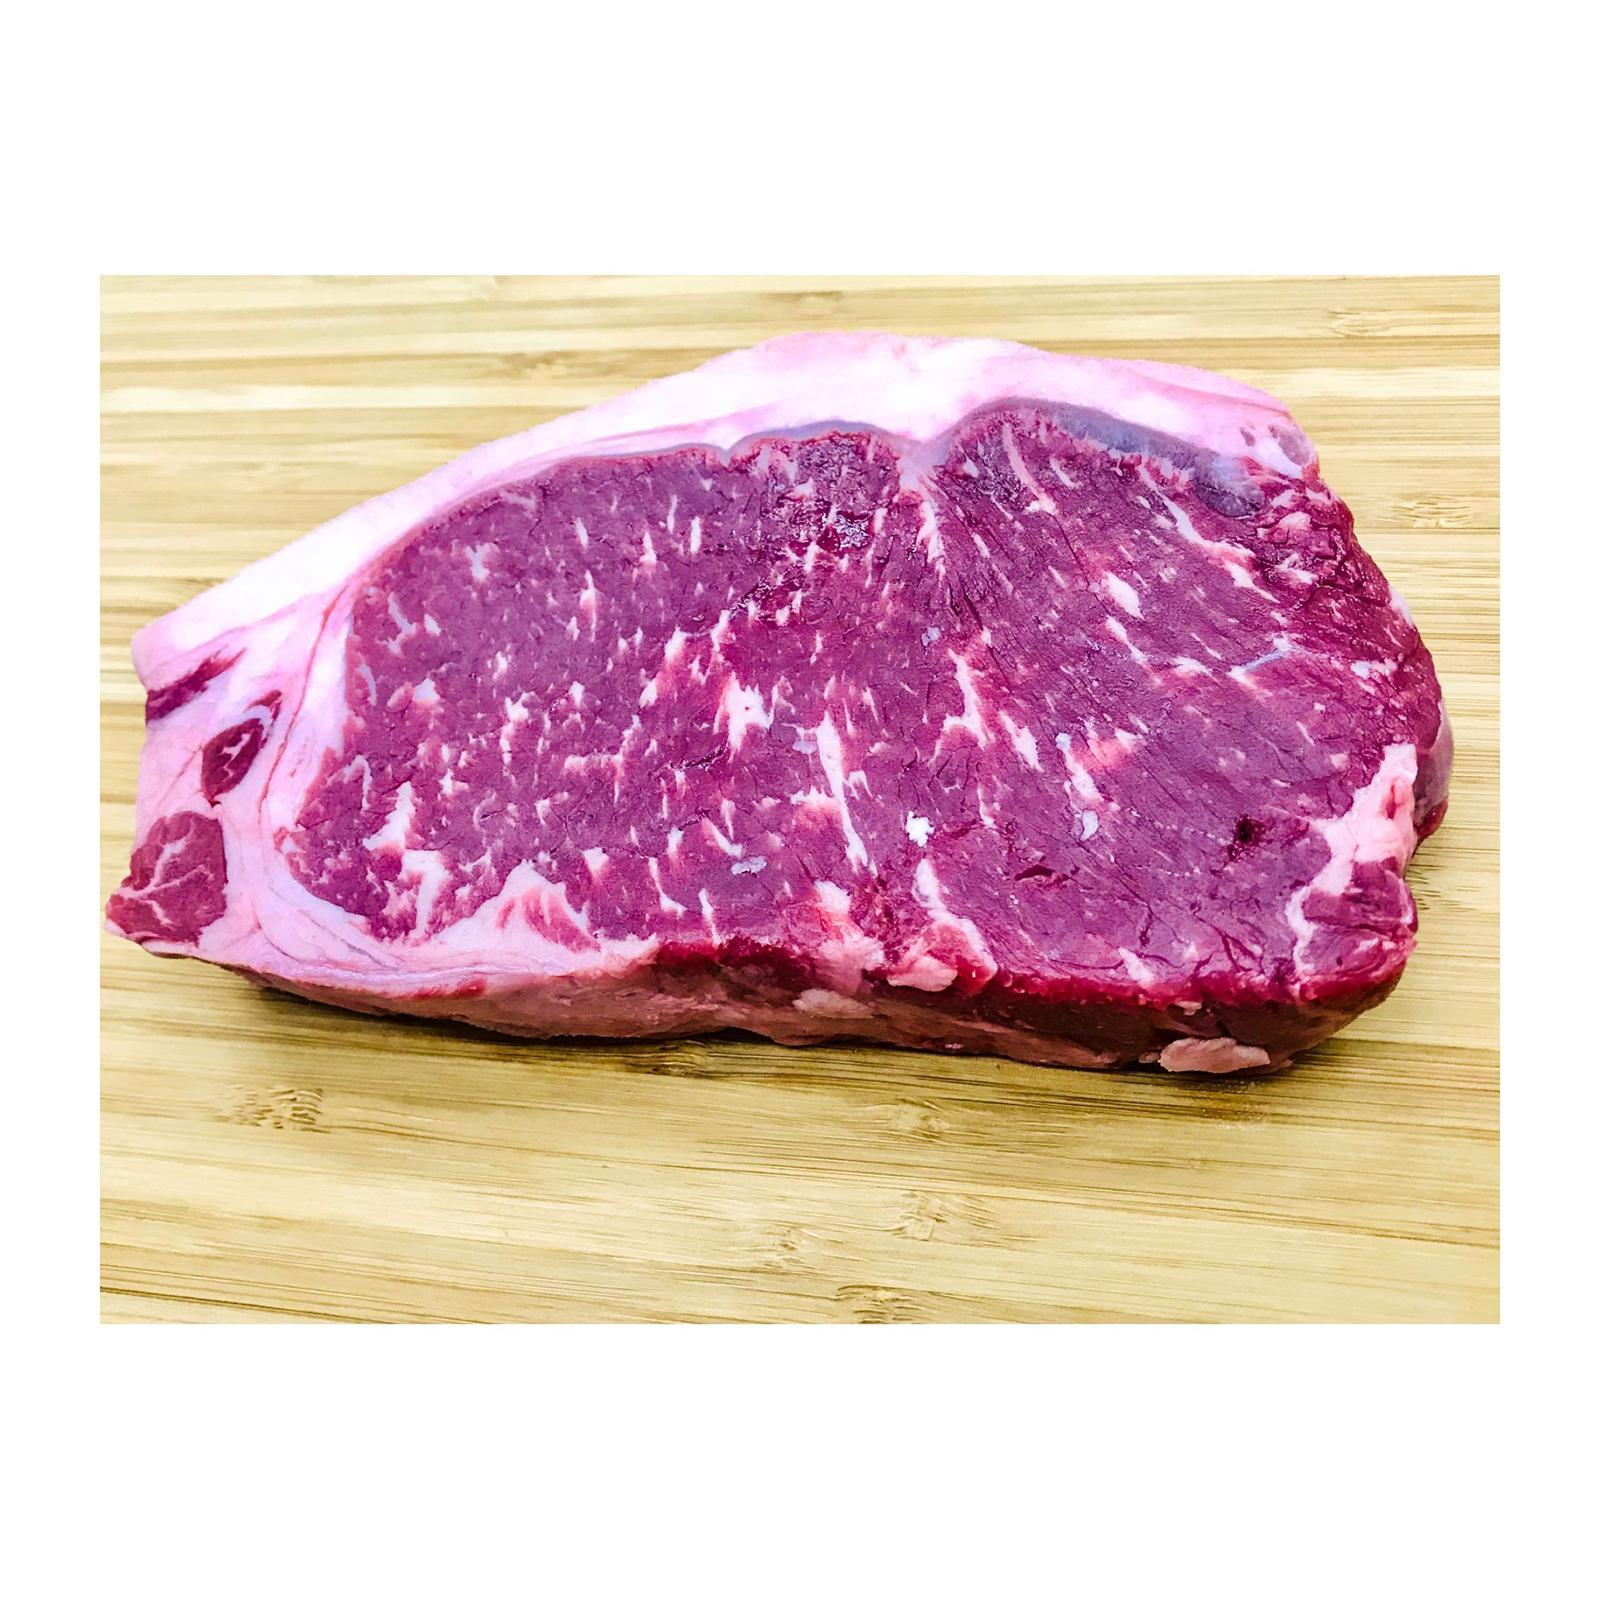 Master Grocer USA Certified Angus Beef Striploin Steak